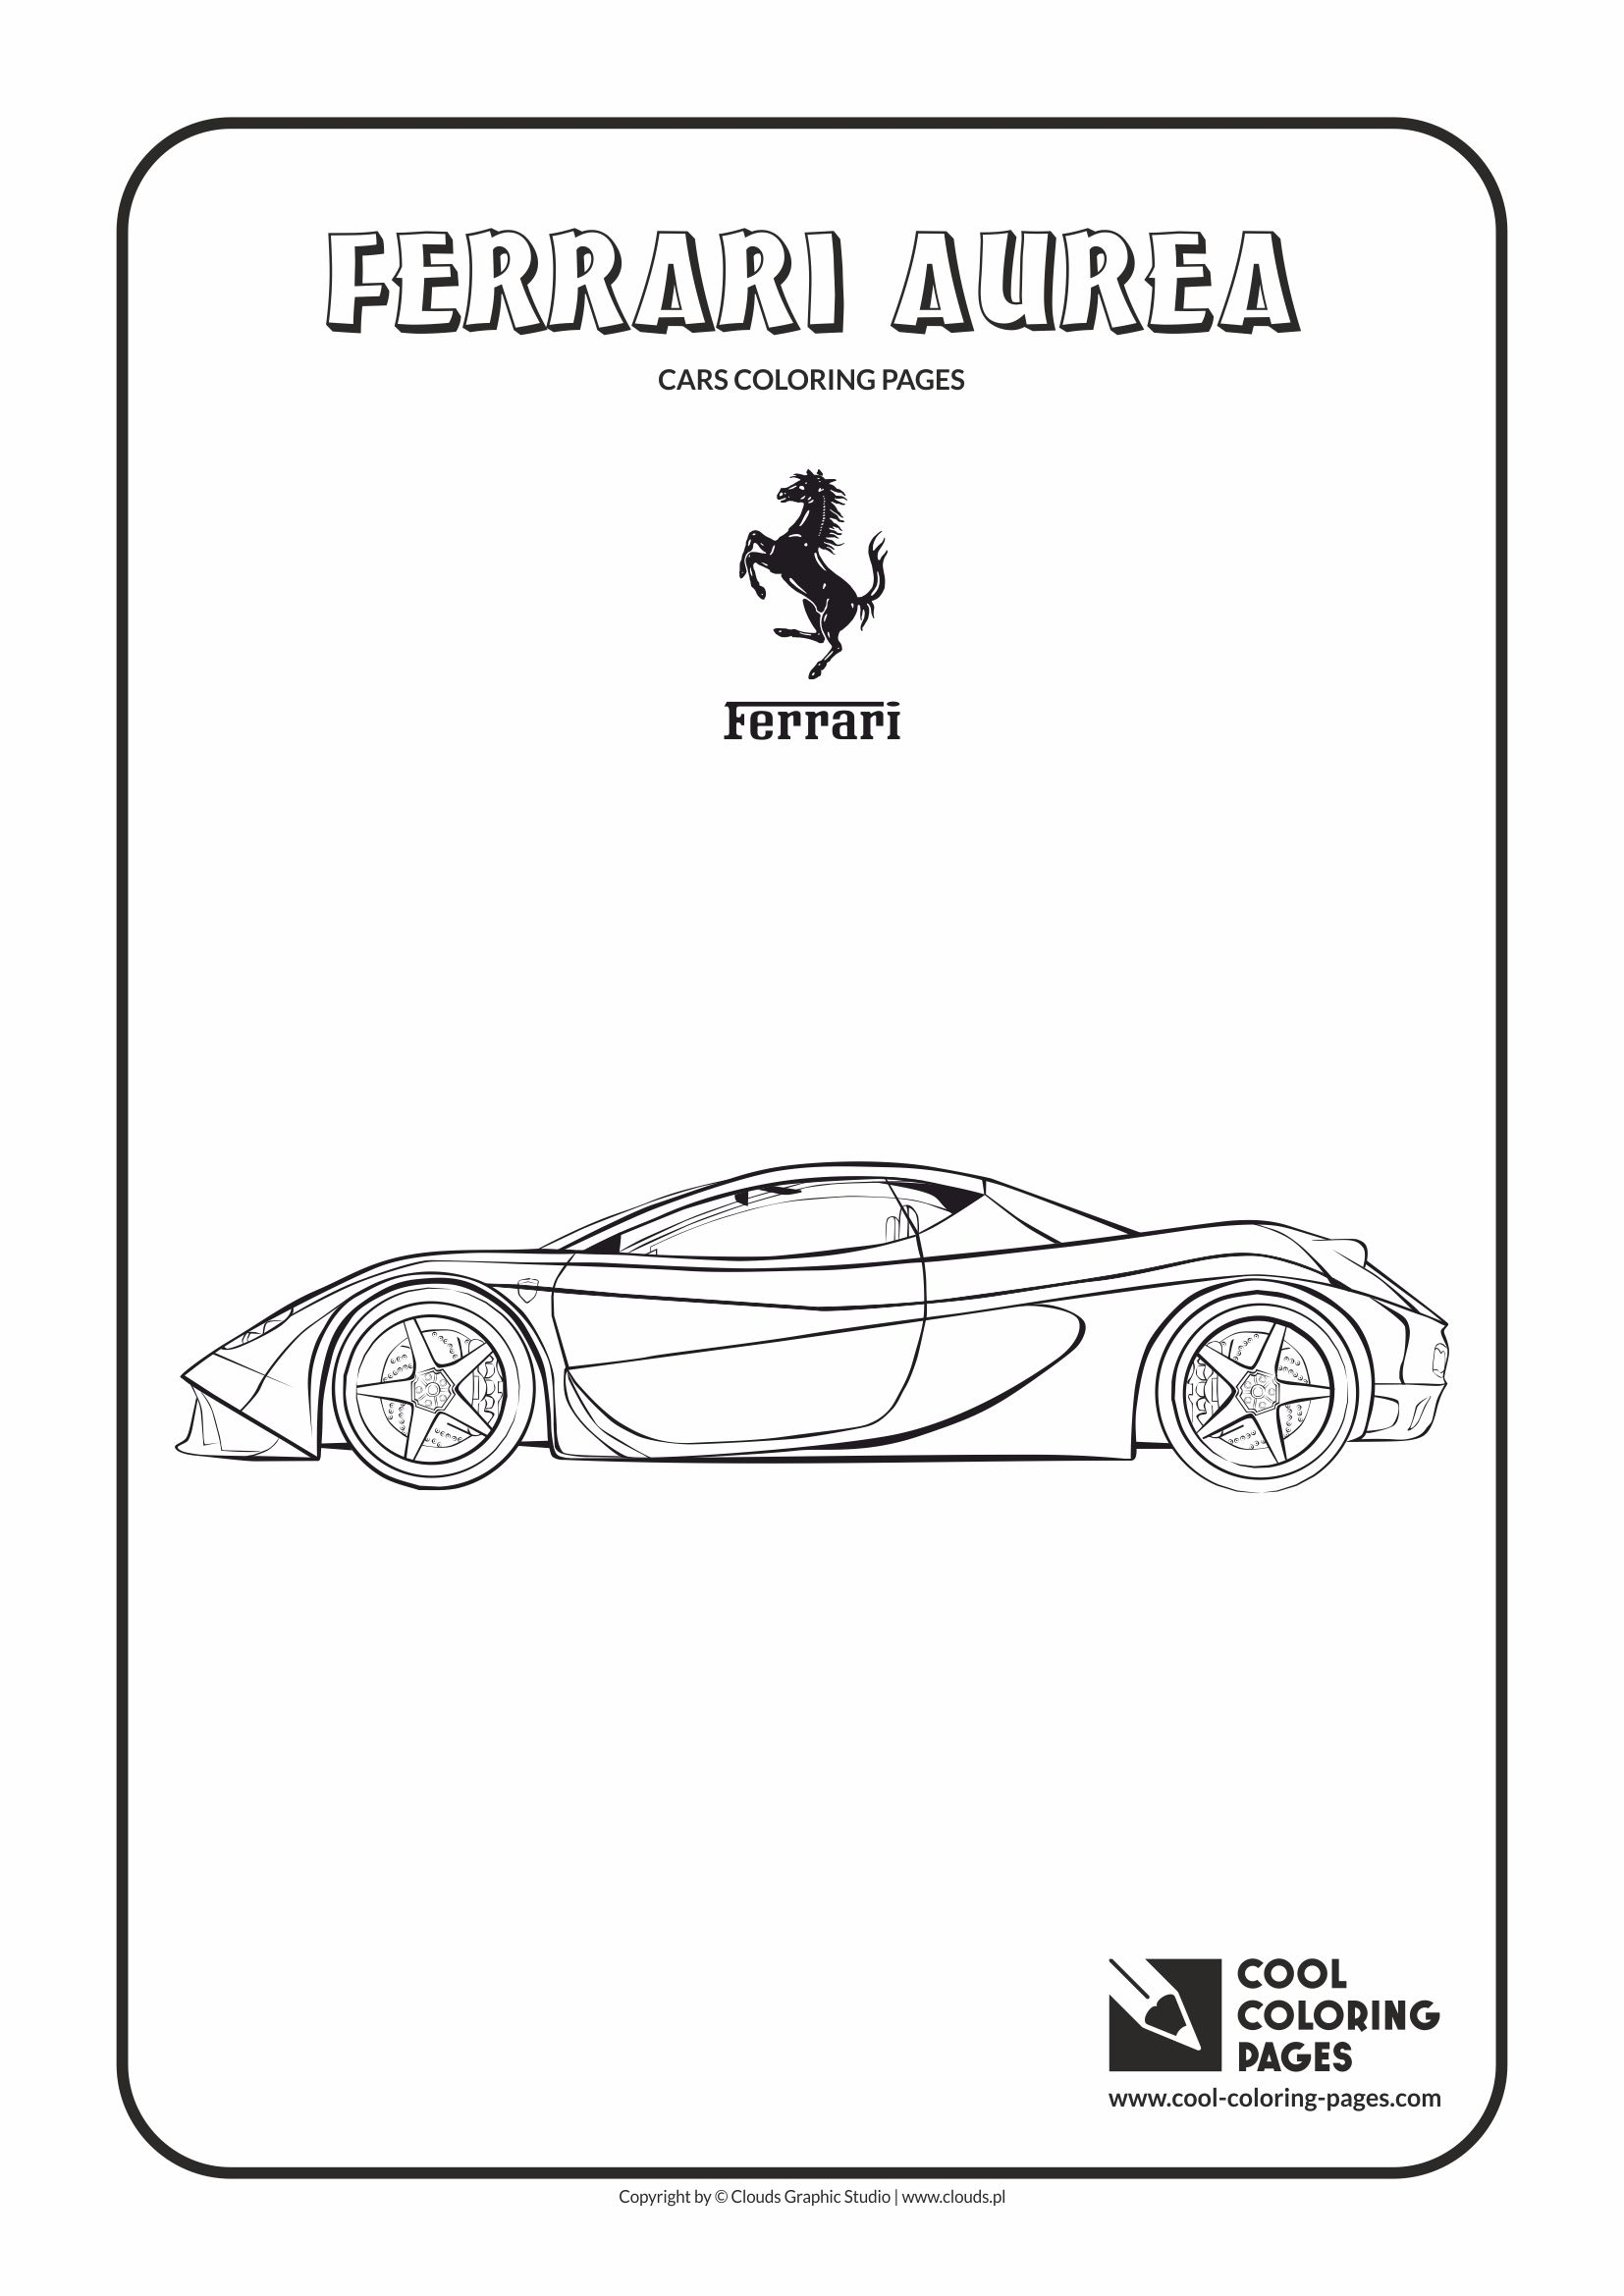 Cool Coloring Pages - Vehicles / Ferrari Aurea / Coloring page with Ferrari Aurea